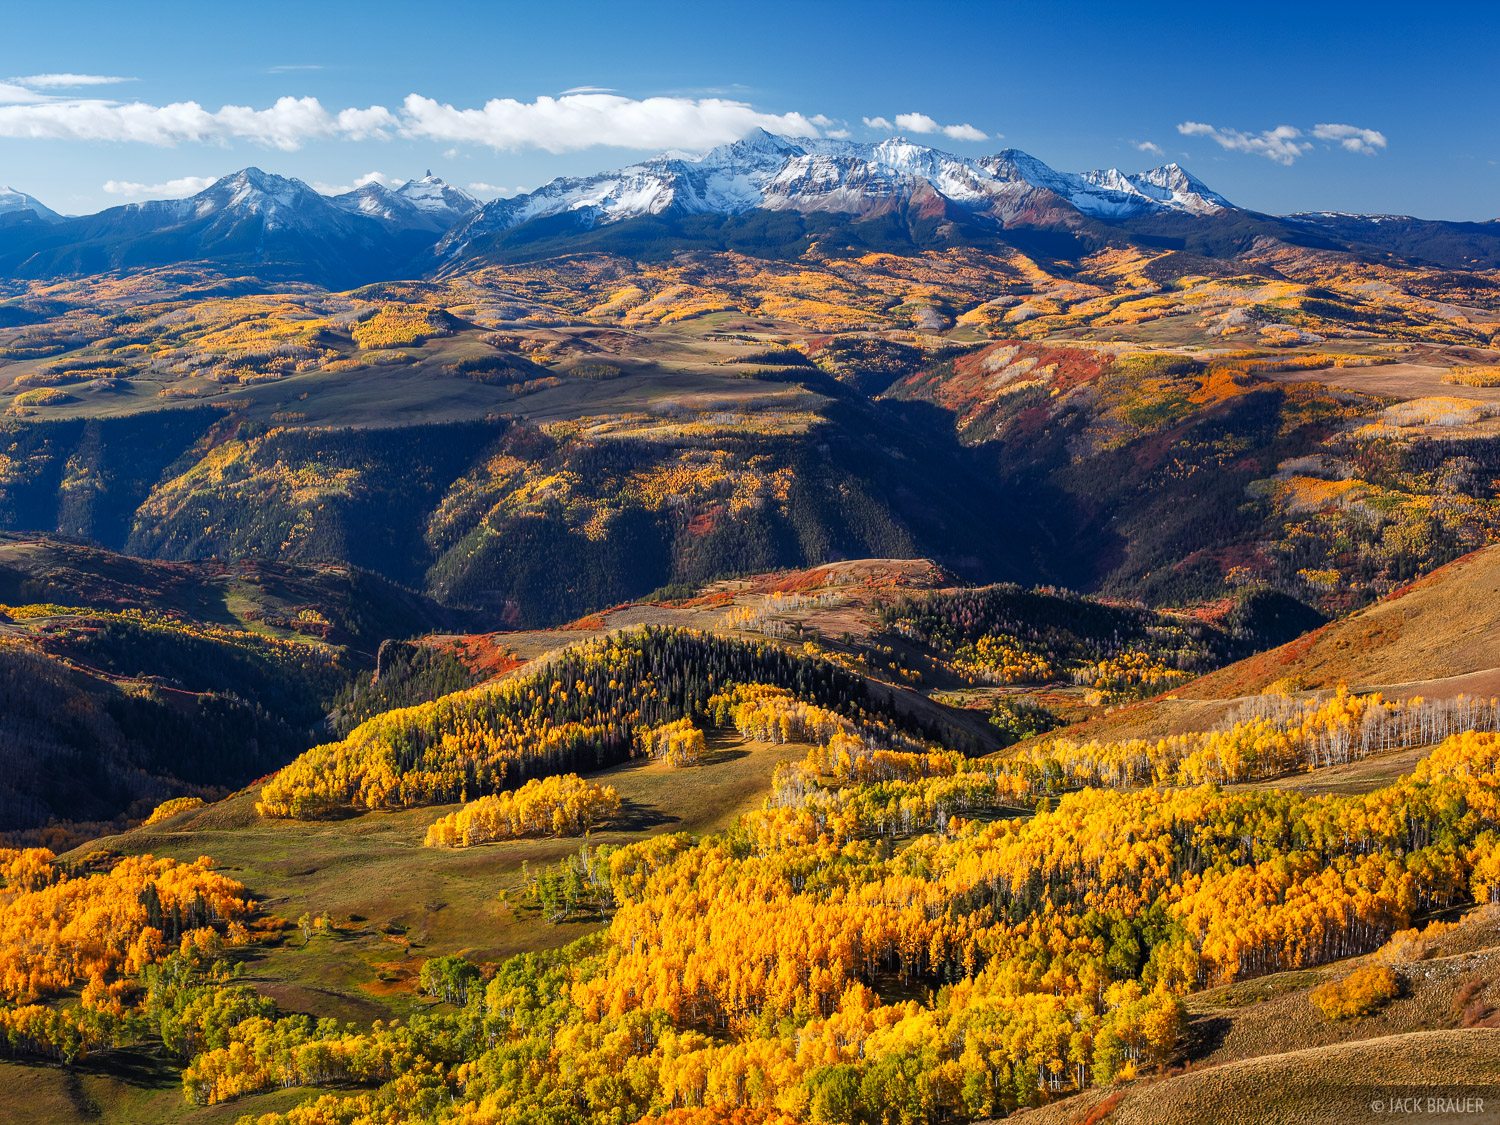 Wilson Peak, Wilson Mesa, aspens, Last Dollar Mountain, San Juan Mountains, Colorado, September, autumn, San Miguel Range, photo